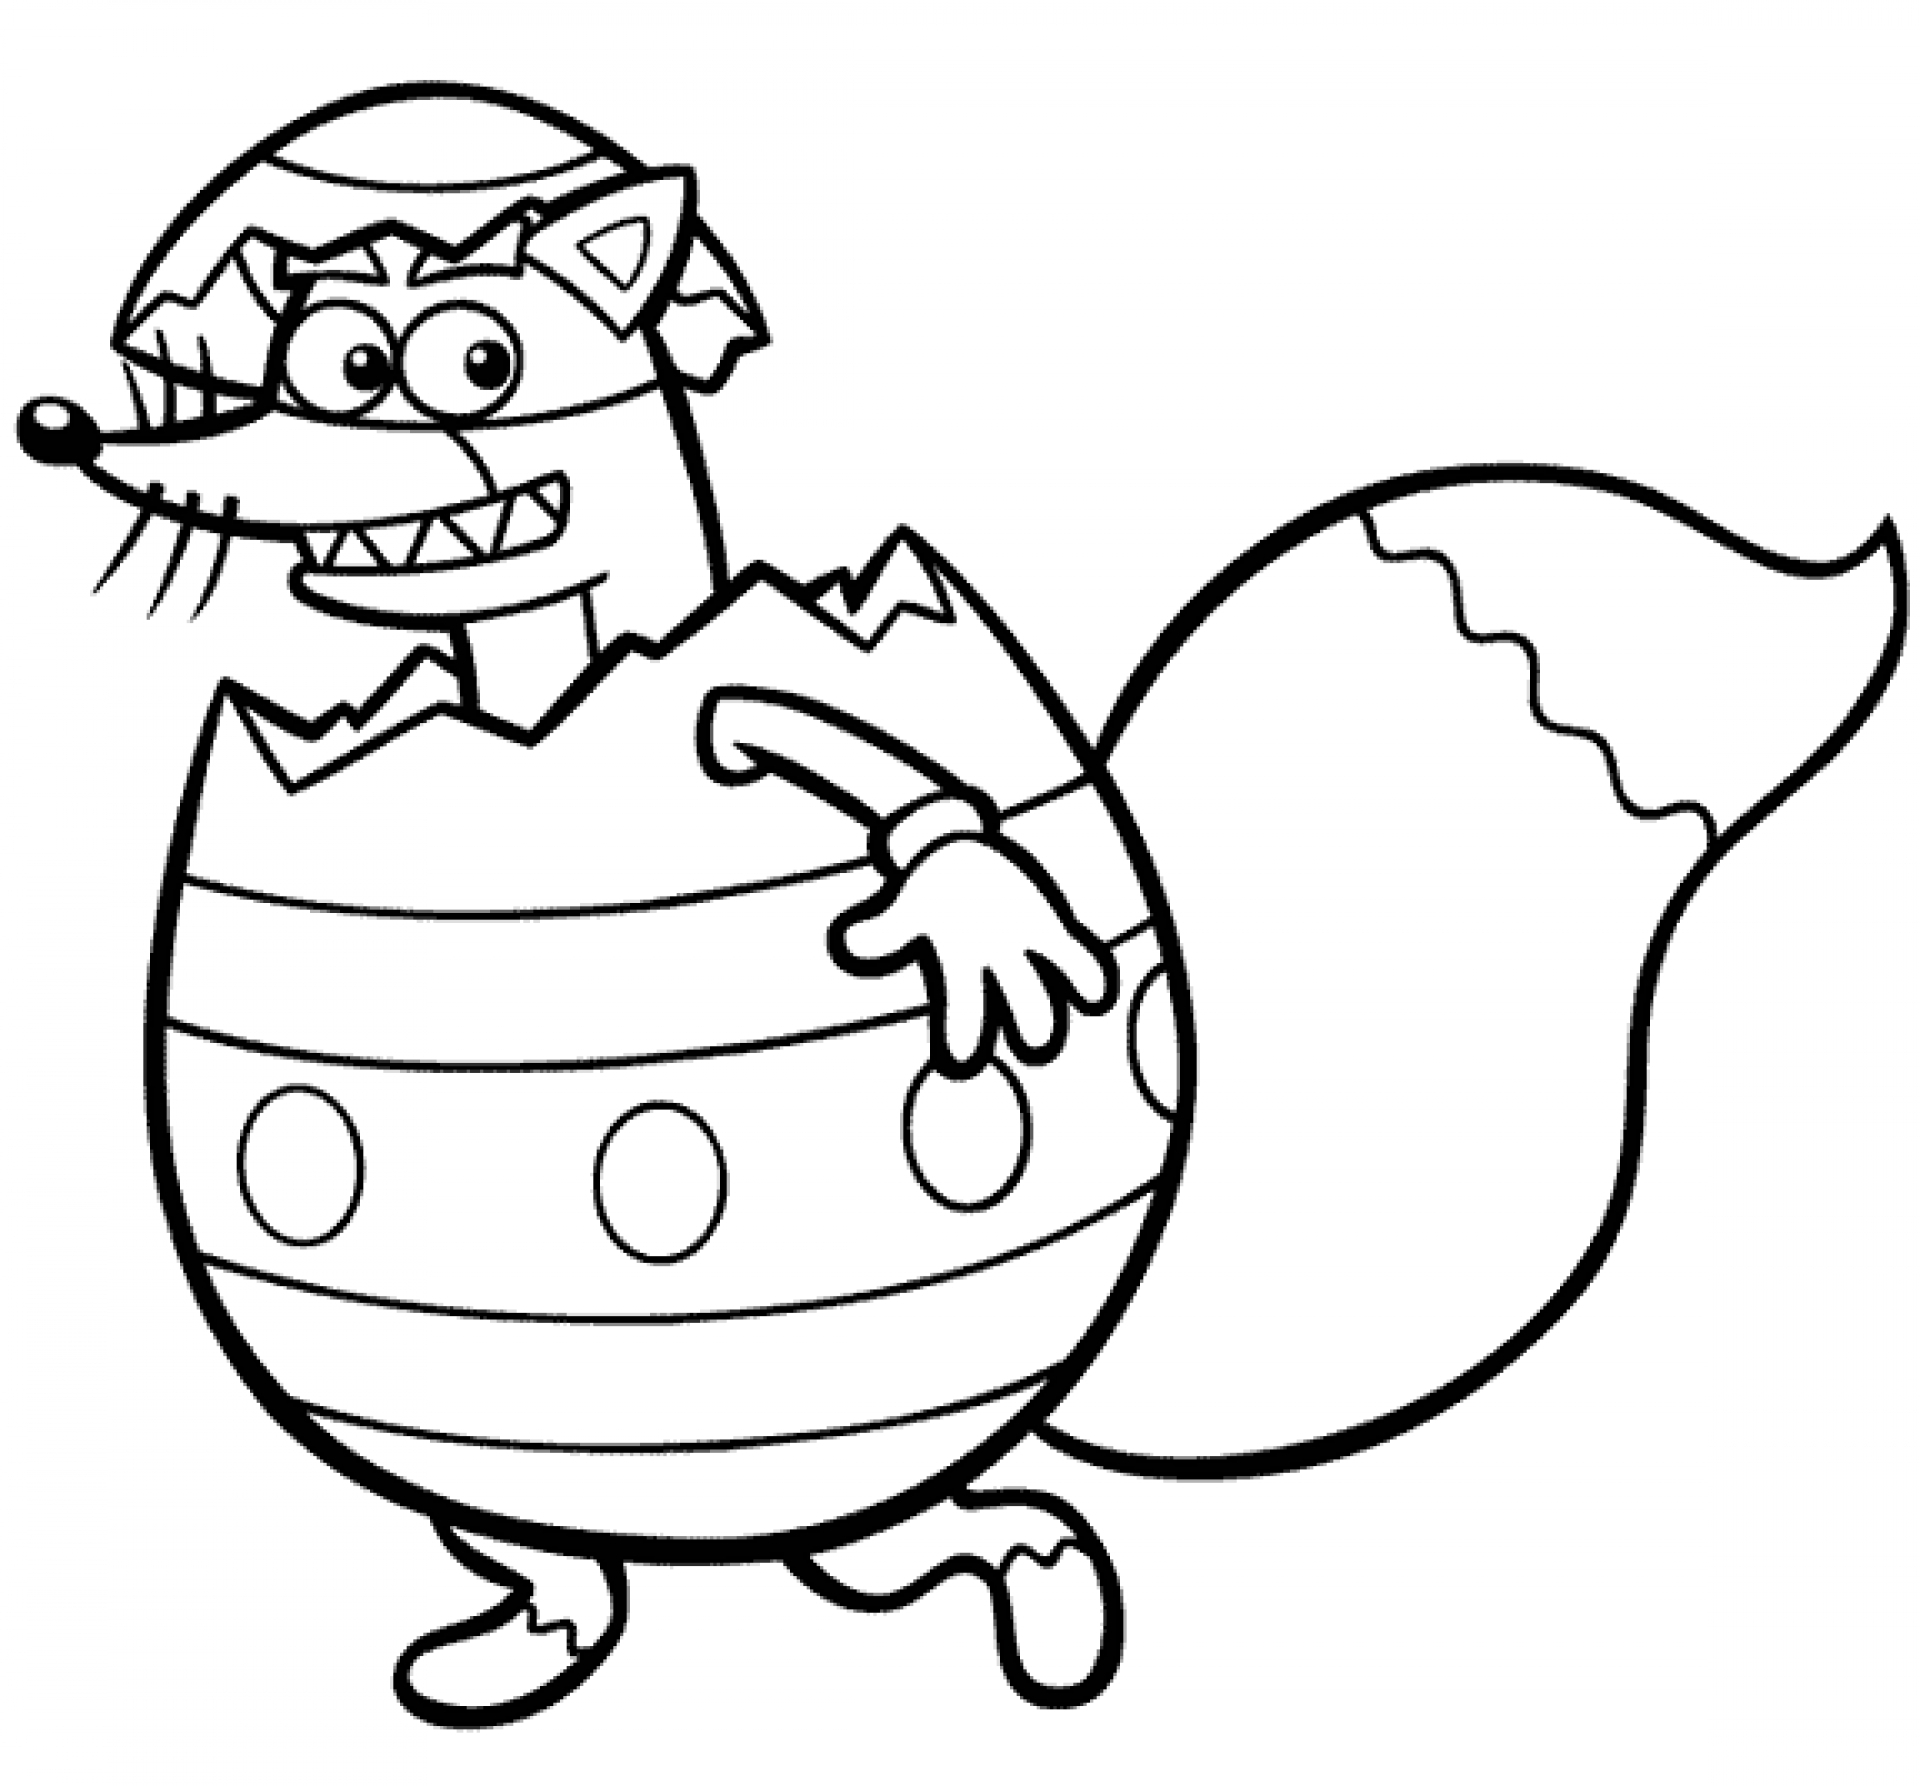 1920x1786 New Top Cartoon Dora The Explorer Coloring Pages For Kids